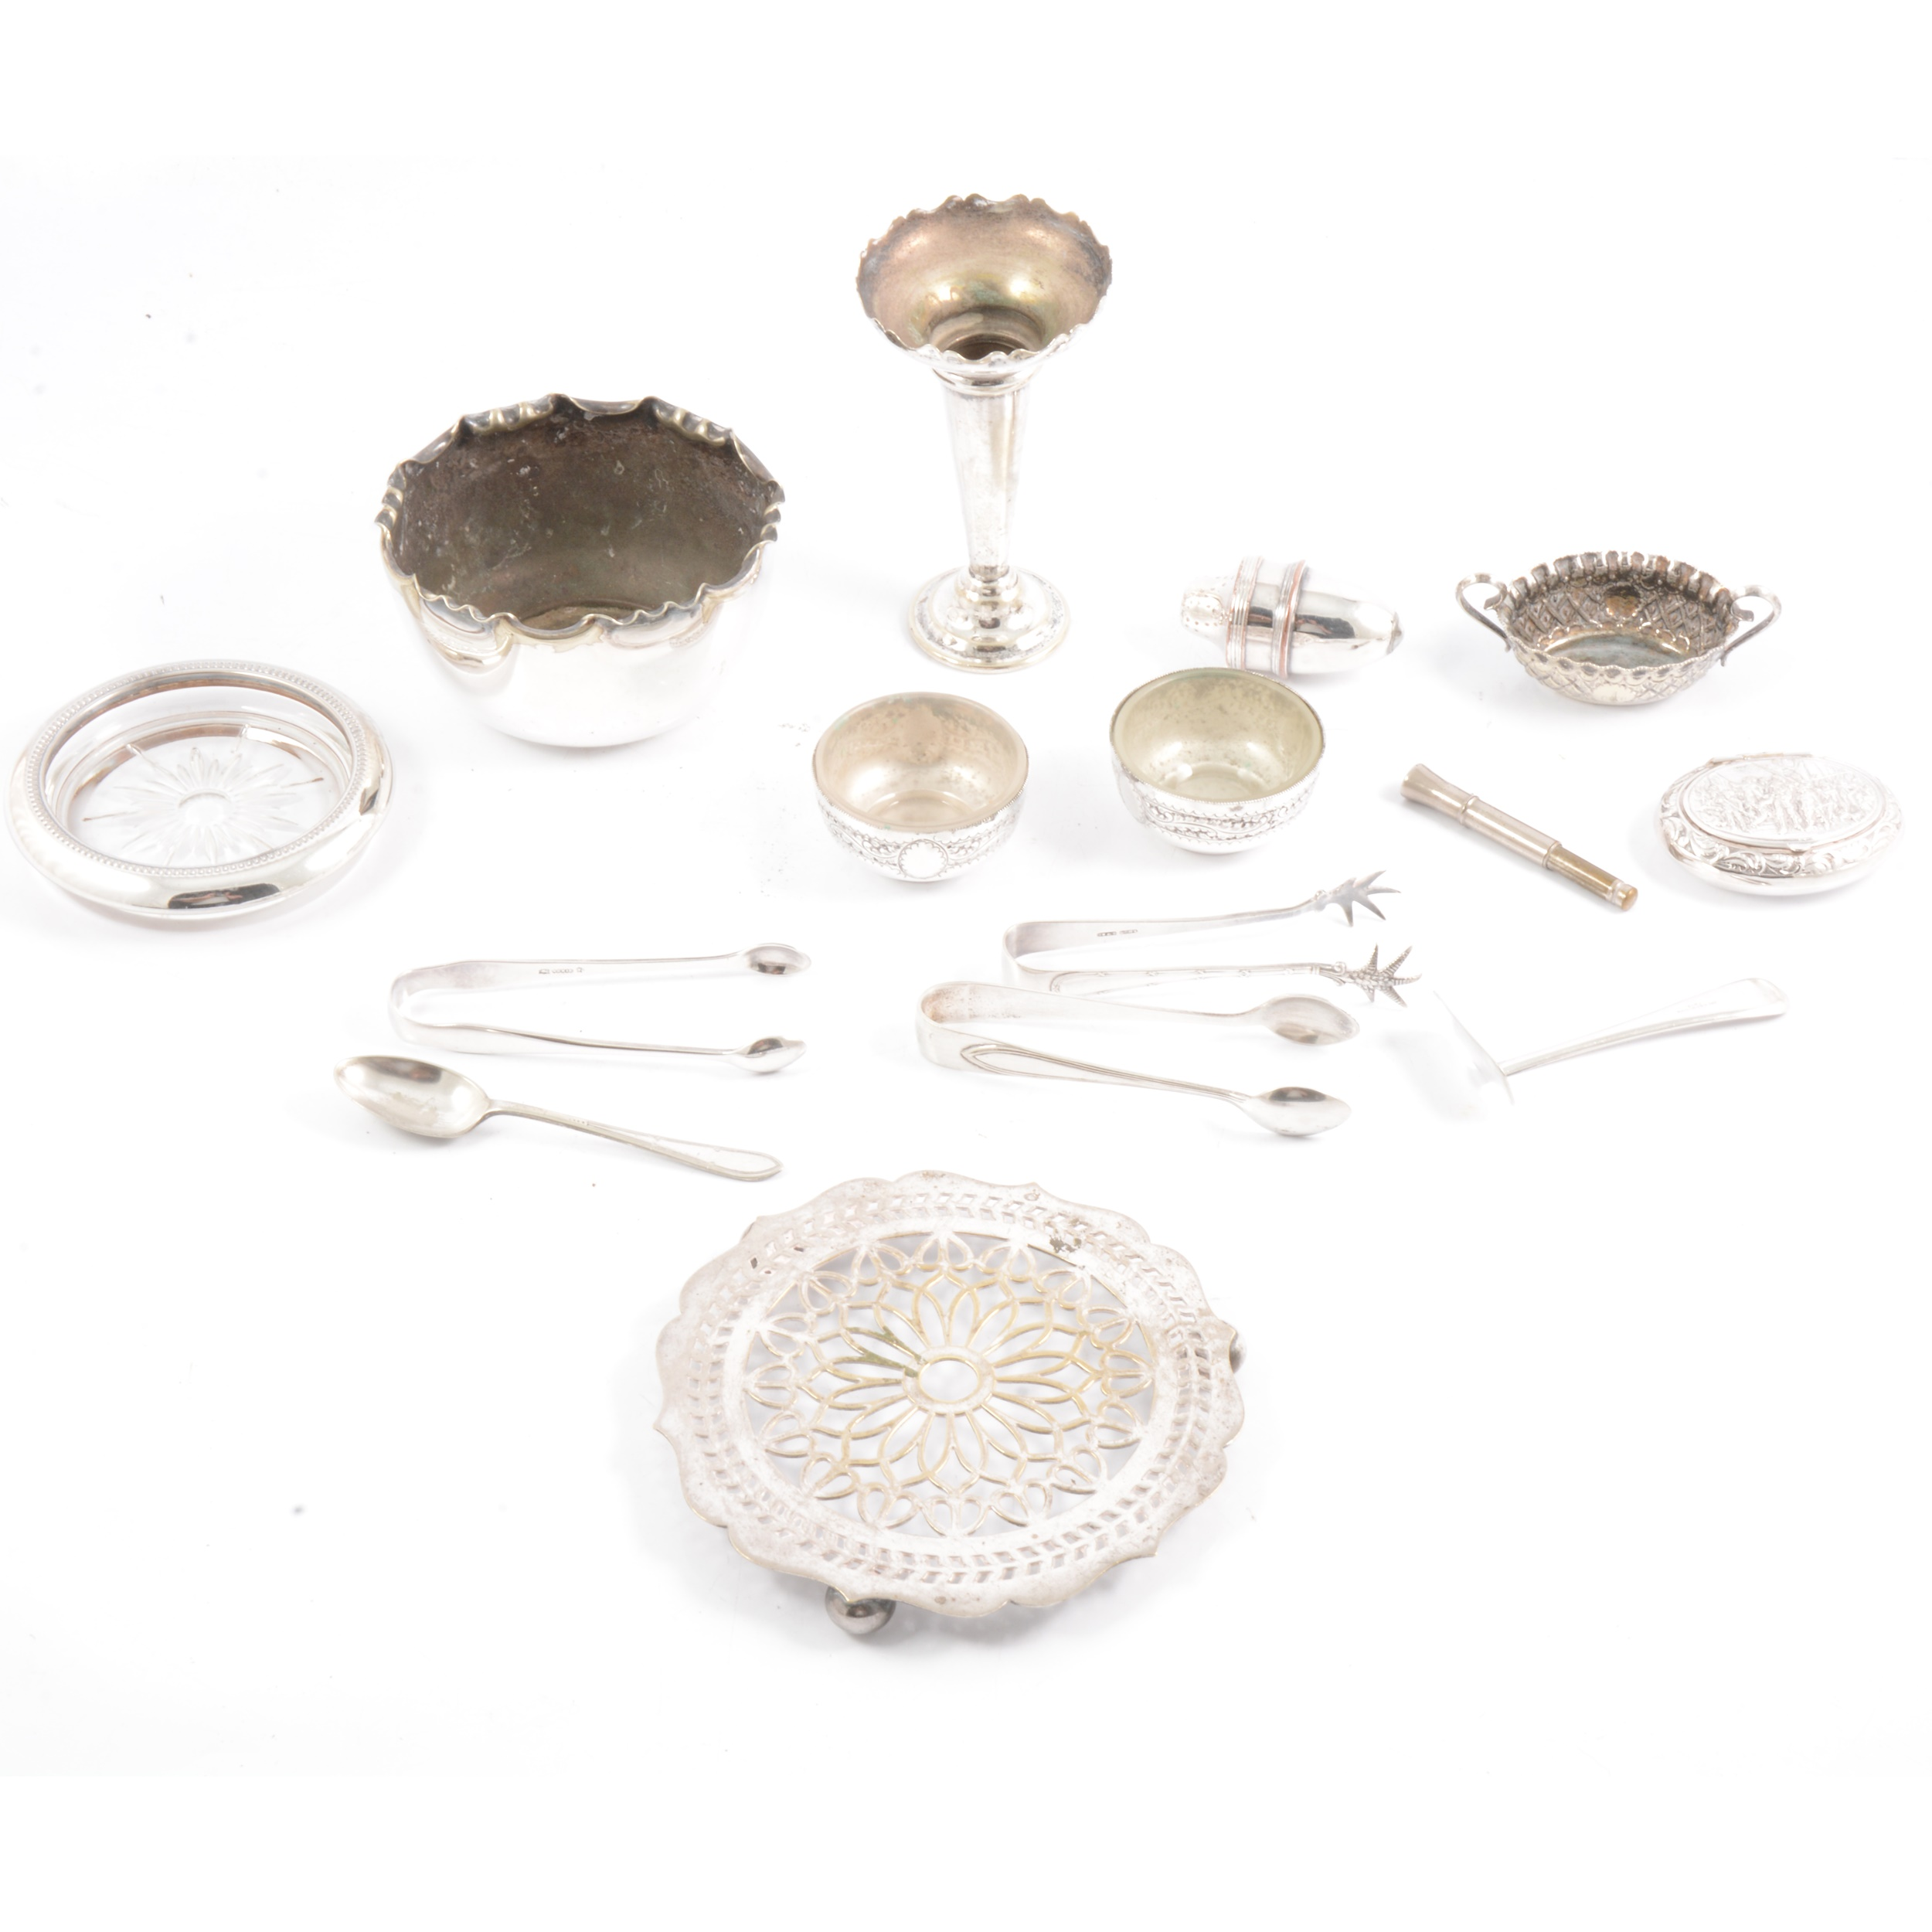 Silver-plated spill vase, salts, trivet and other plated wares.